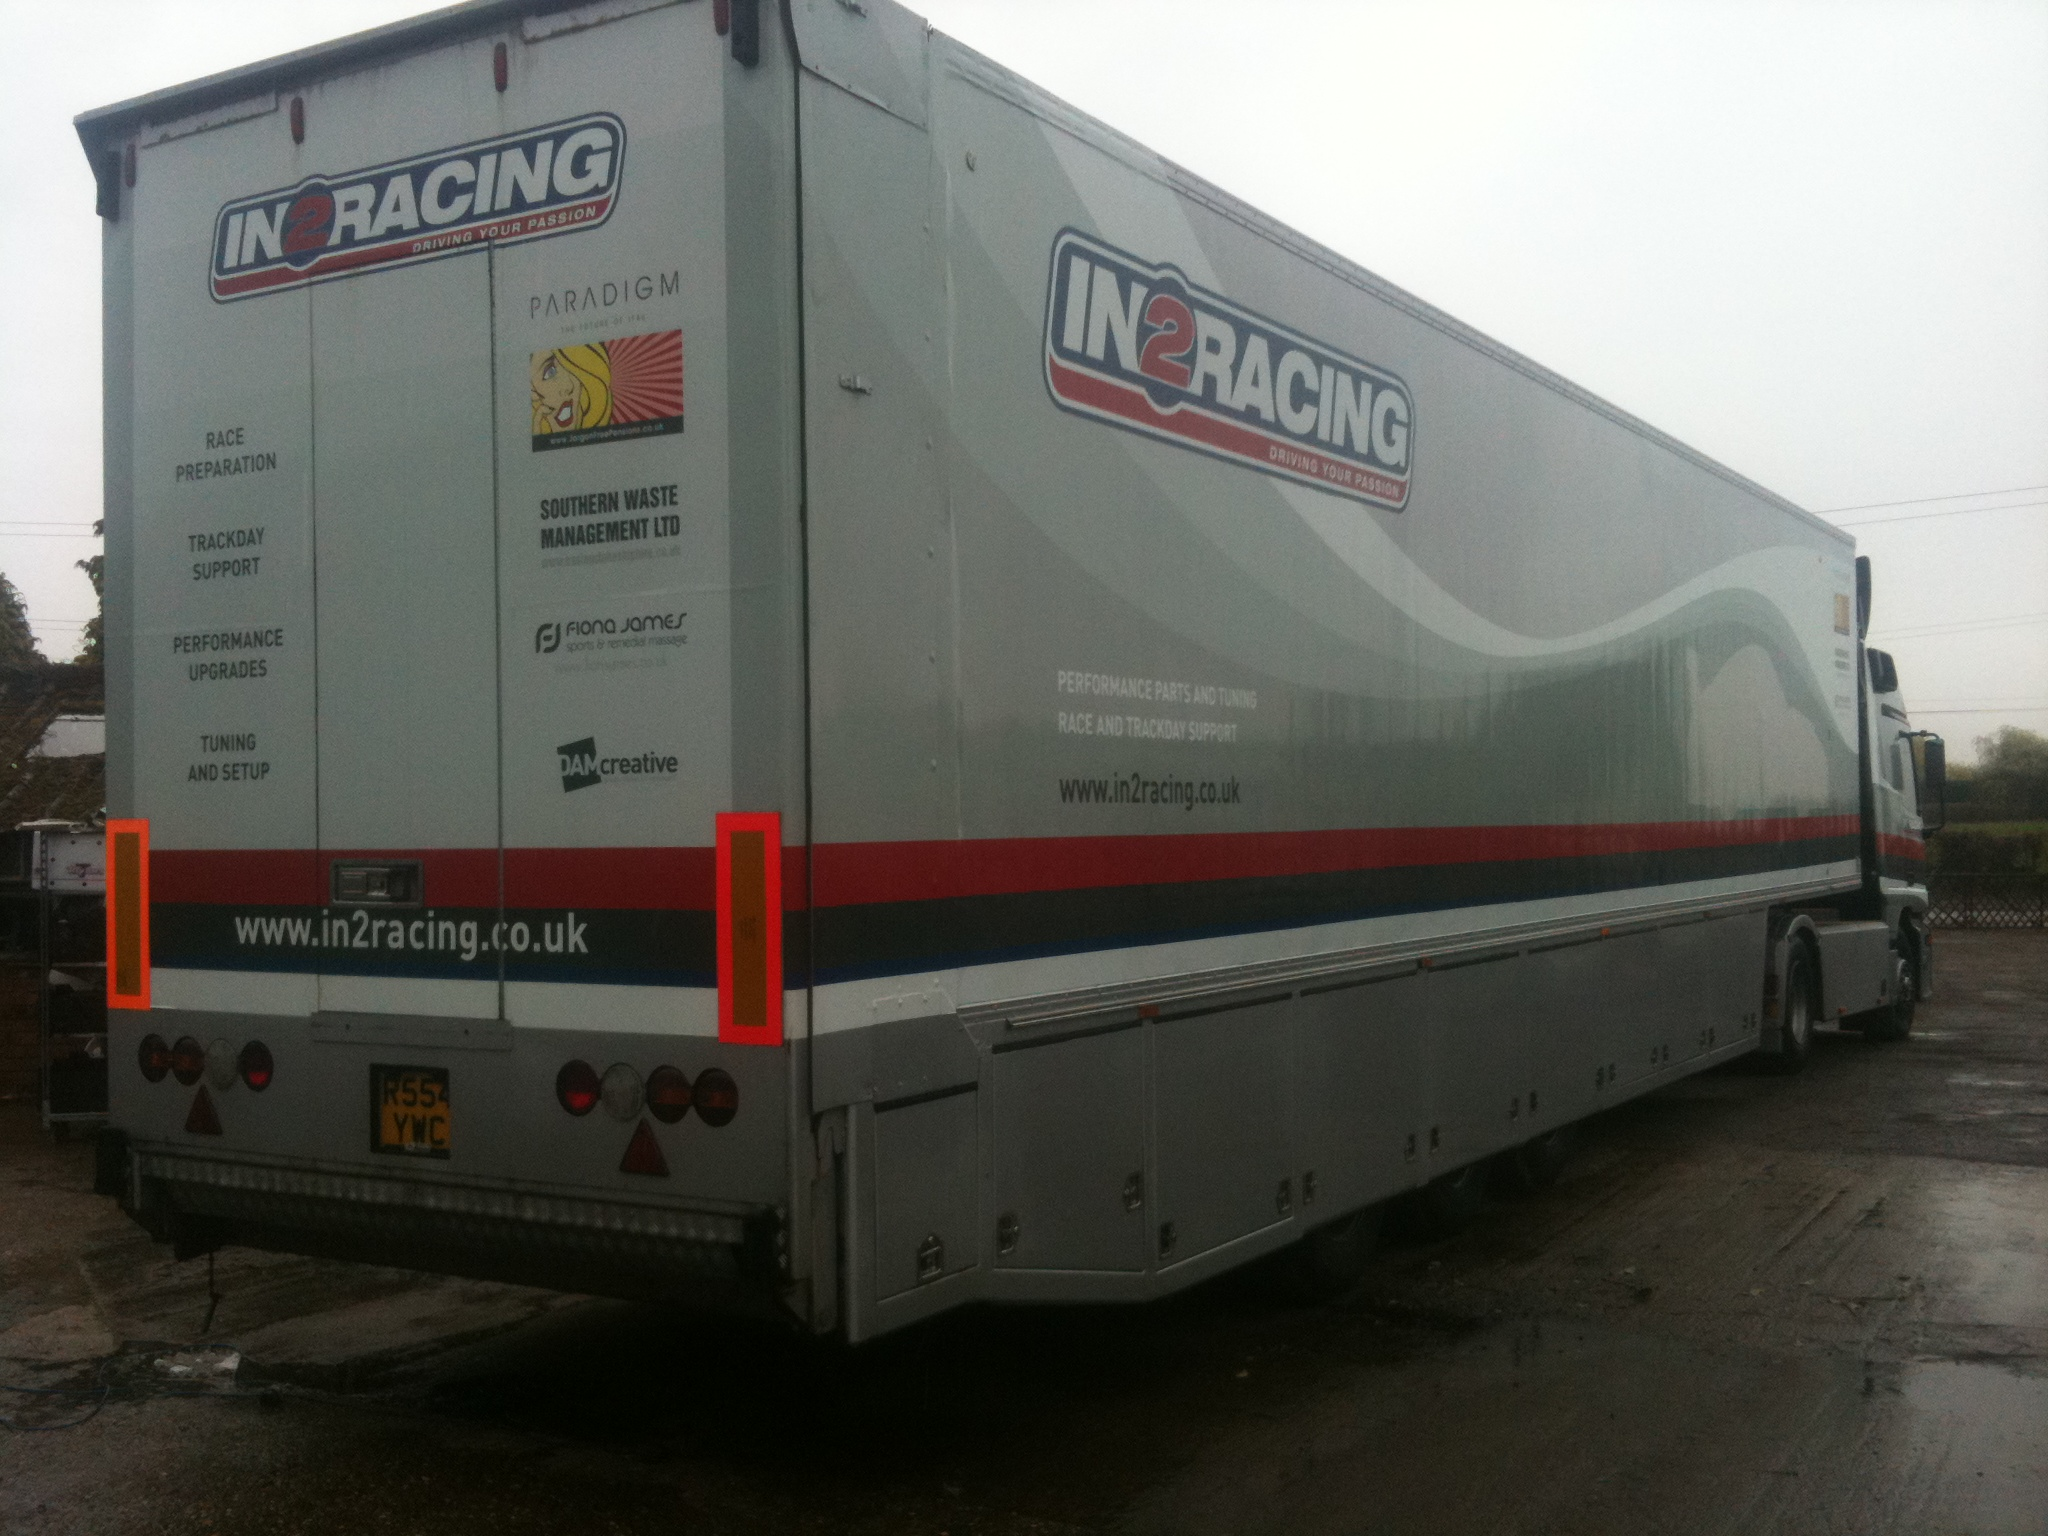 3 Car Race Transporter Trailers Amp Transporters For Sale At Raced Amp Rallied Rally